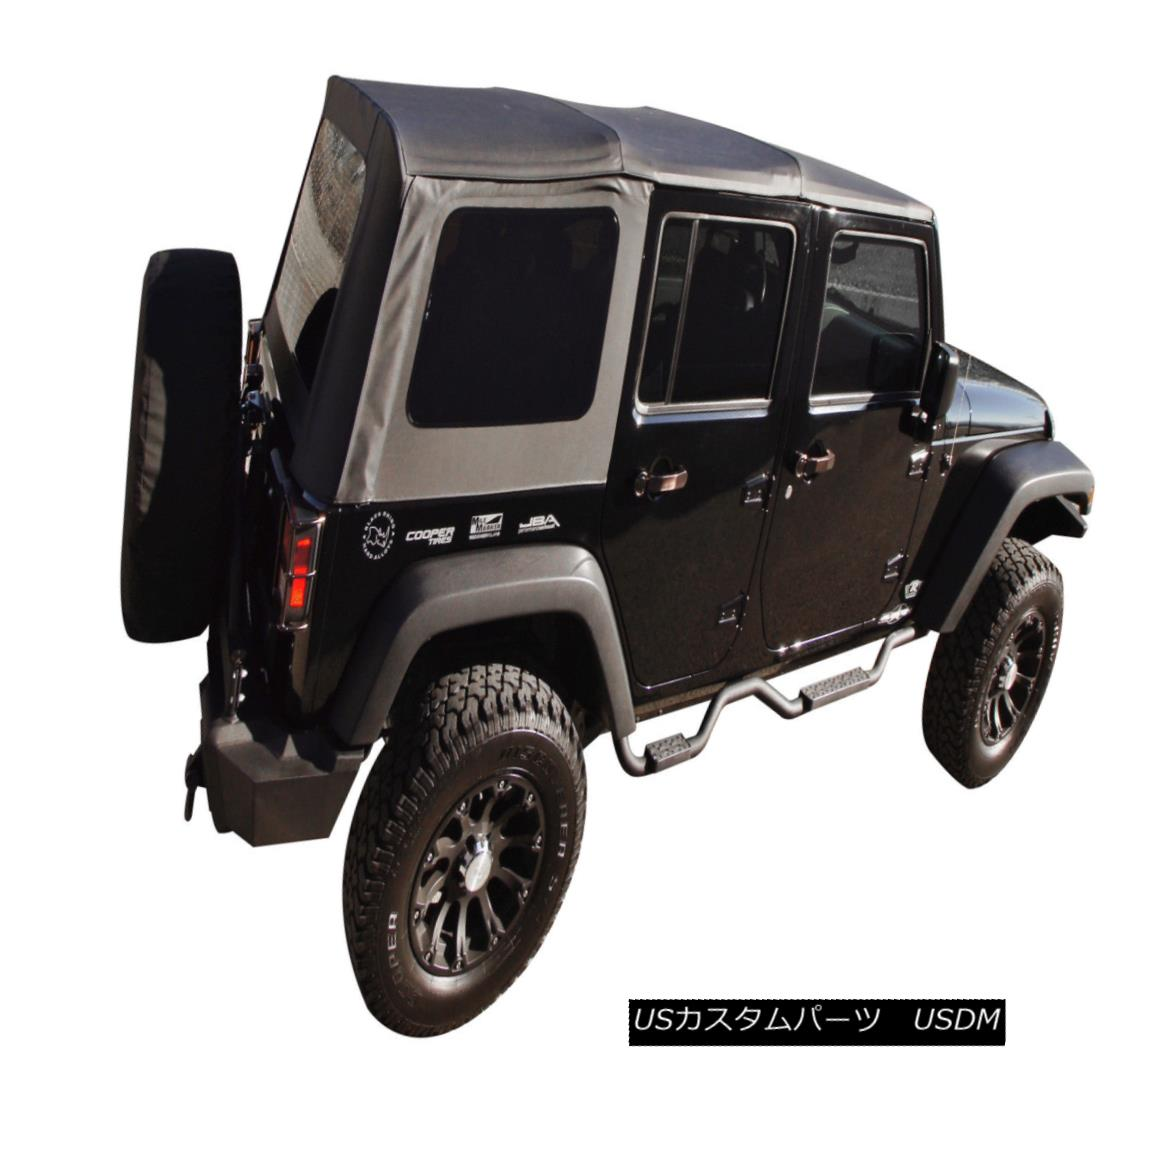 幌・ソフトトップ 2007-2009 JEEP WRANGLER UNLIMITED 4 DOOR REPLACEMENT BLACK SOFT TOP TINT WINDOWS 2007-2009 JEEP WRANGLER無制限4ドアの交換黒いソフトトップテントWINDOWS